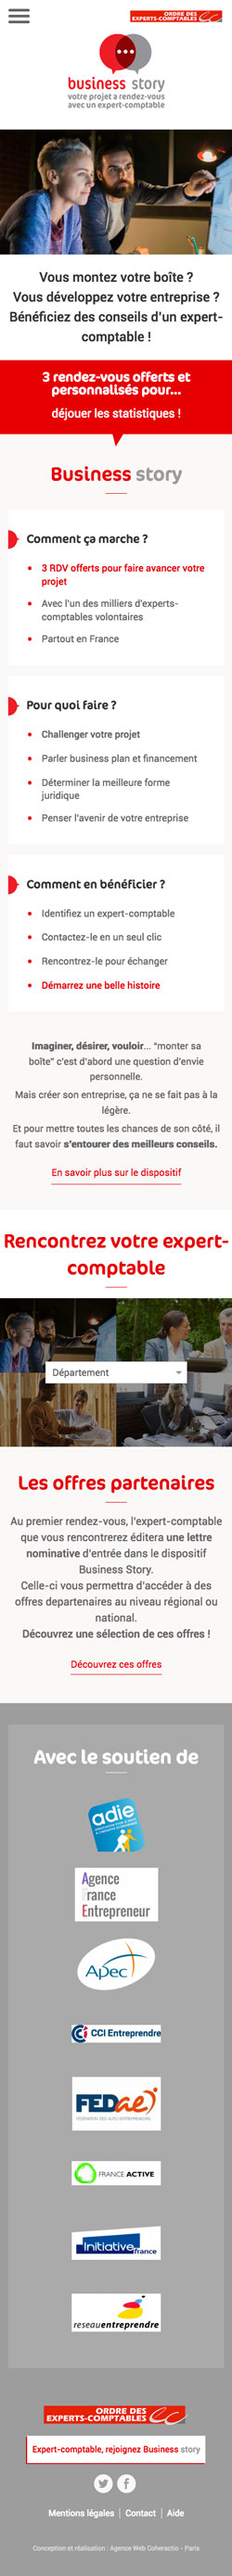 Business Story - Conception site mobile par Agence Web Coheractio